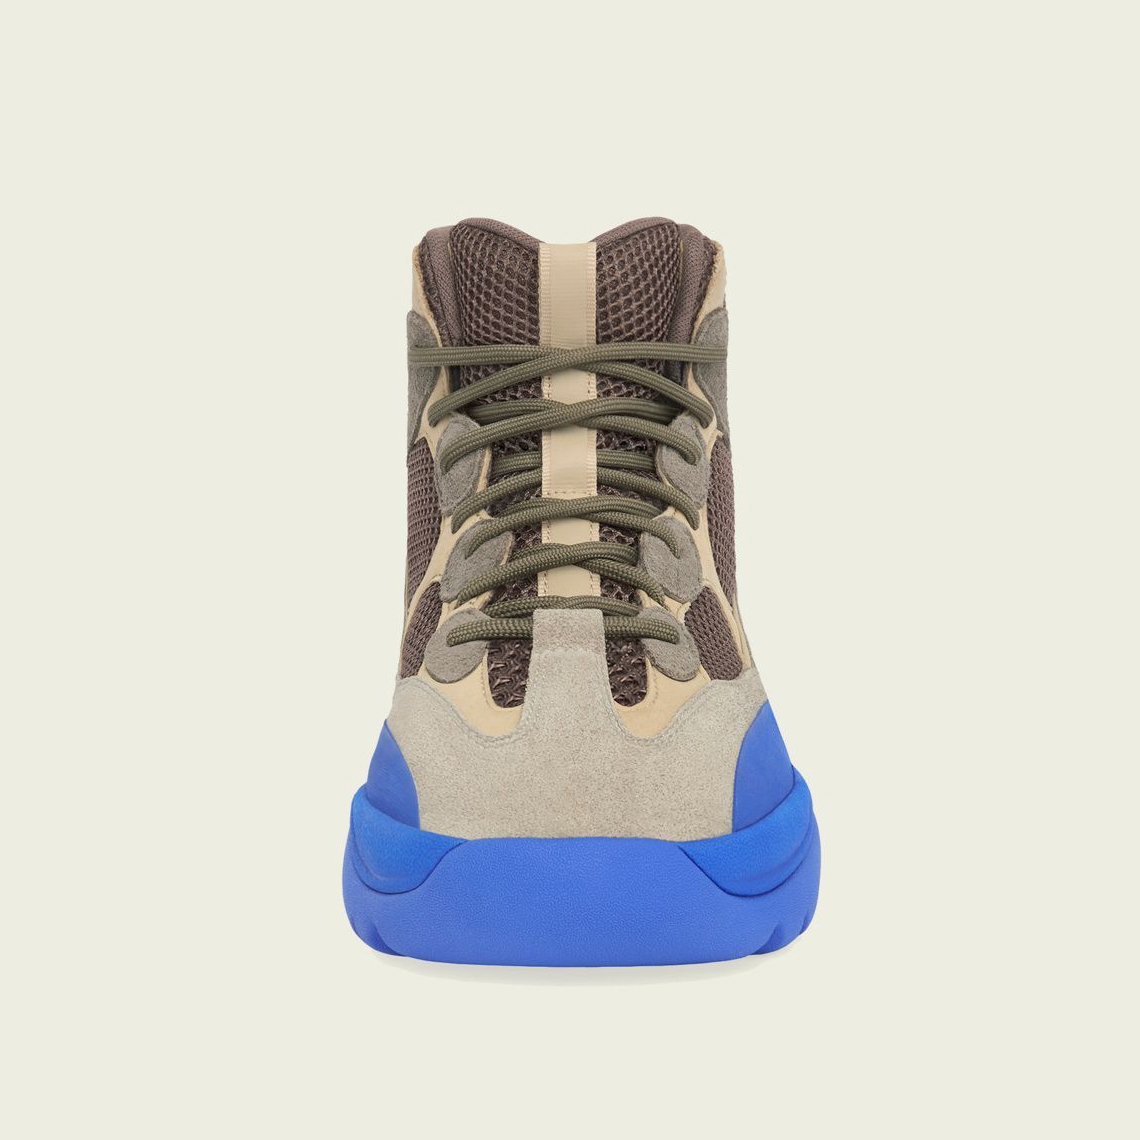 adidas-yeezy-desert-boot-taupe-blue-release-date-3